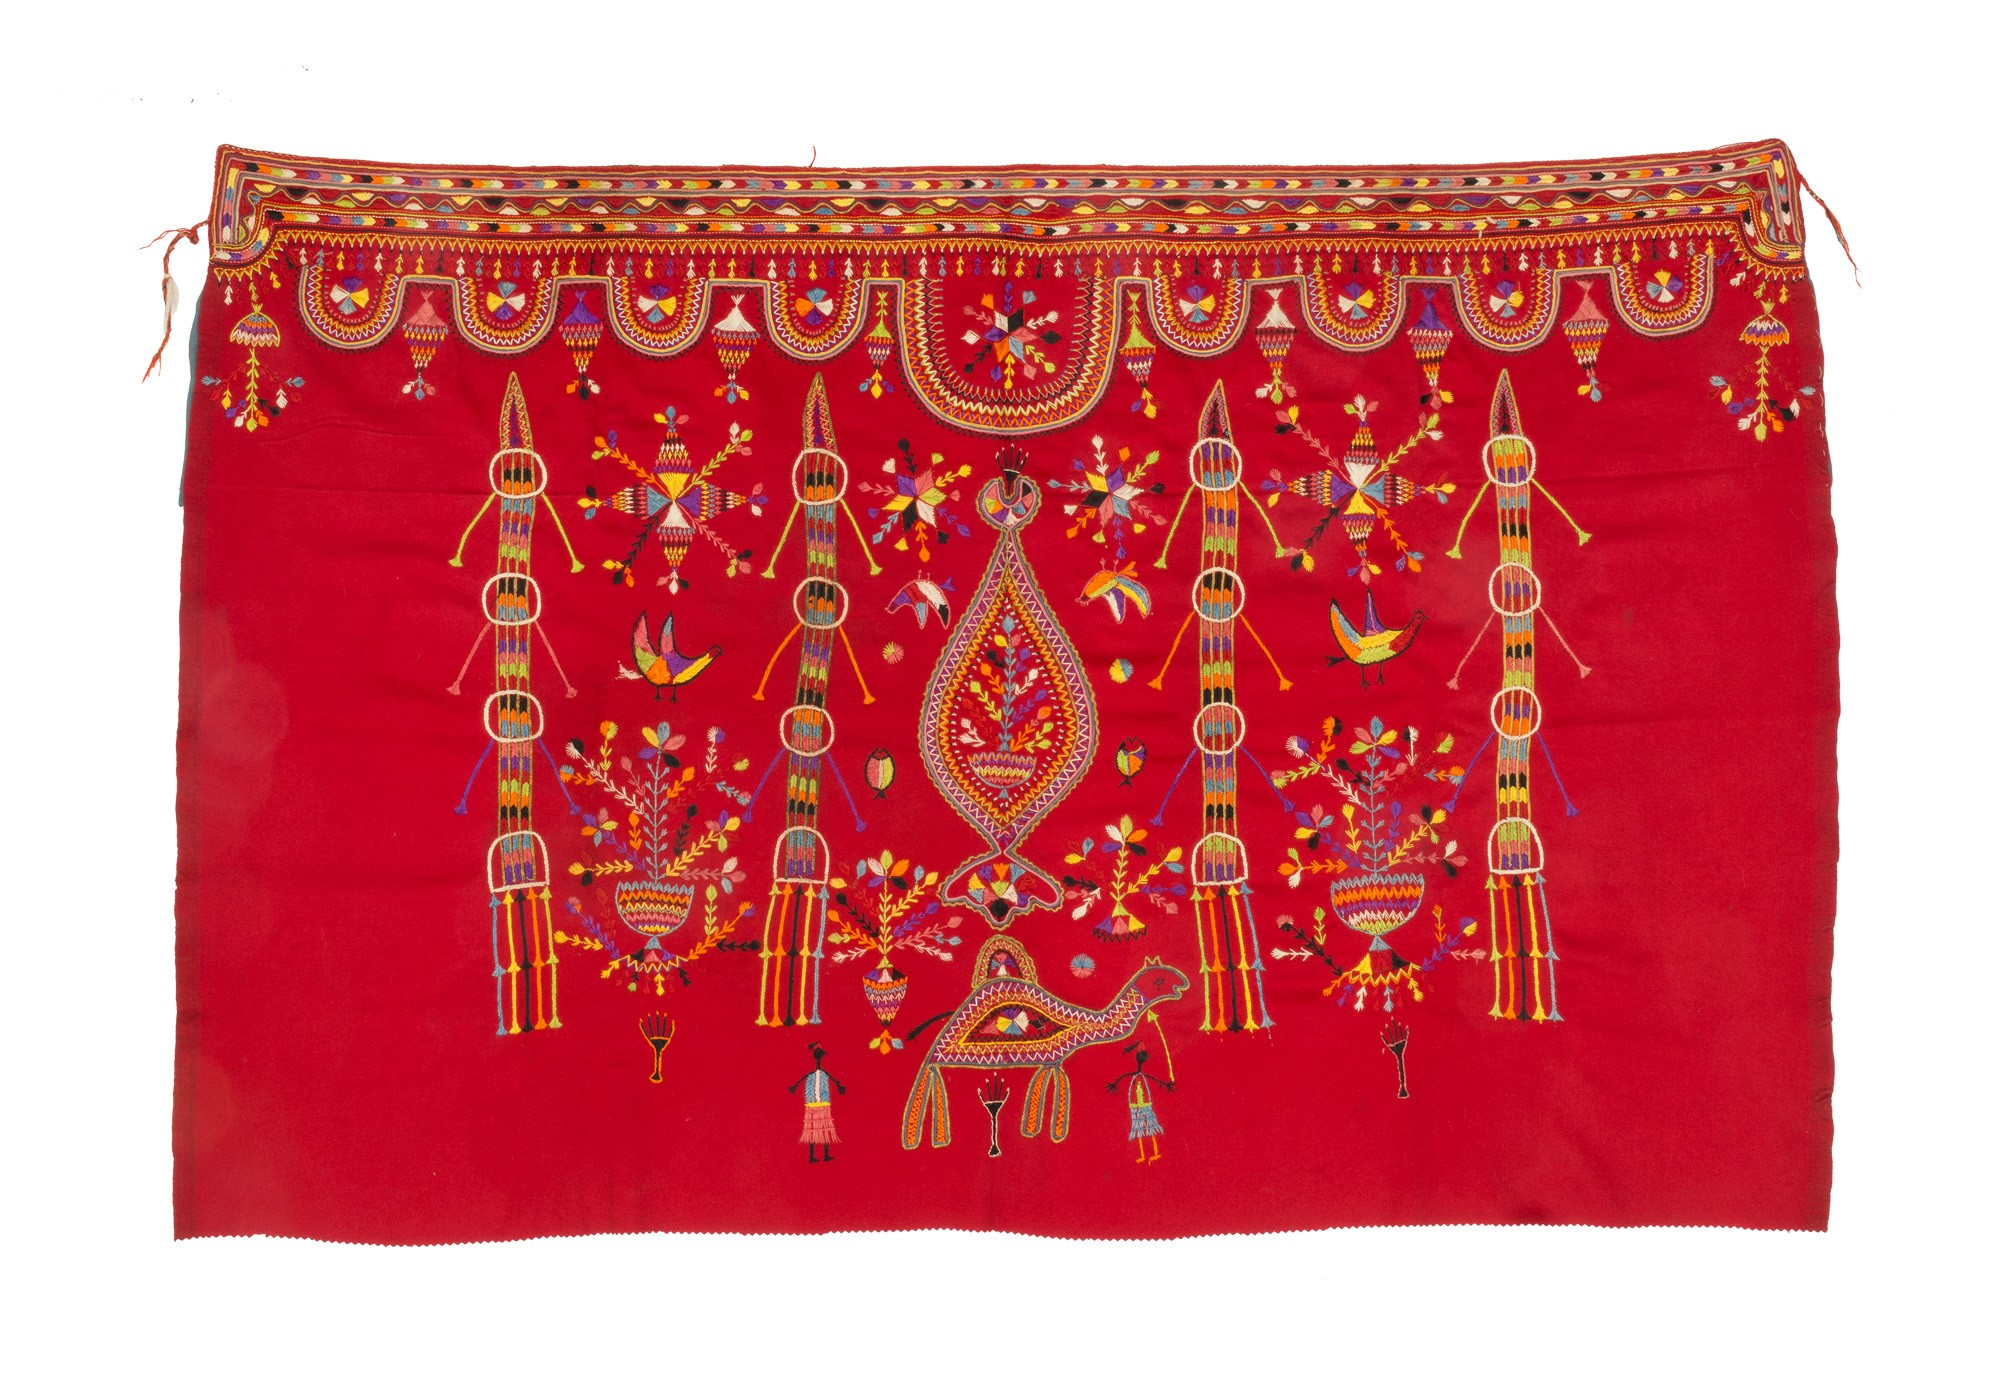 Finely embroidered women's ceremonial veil 'tajira'